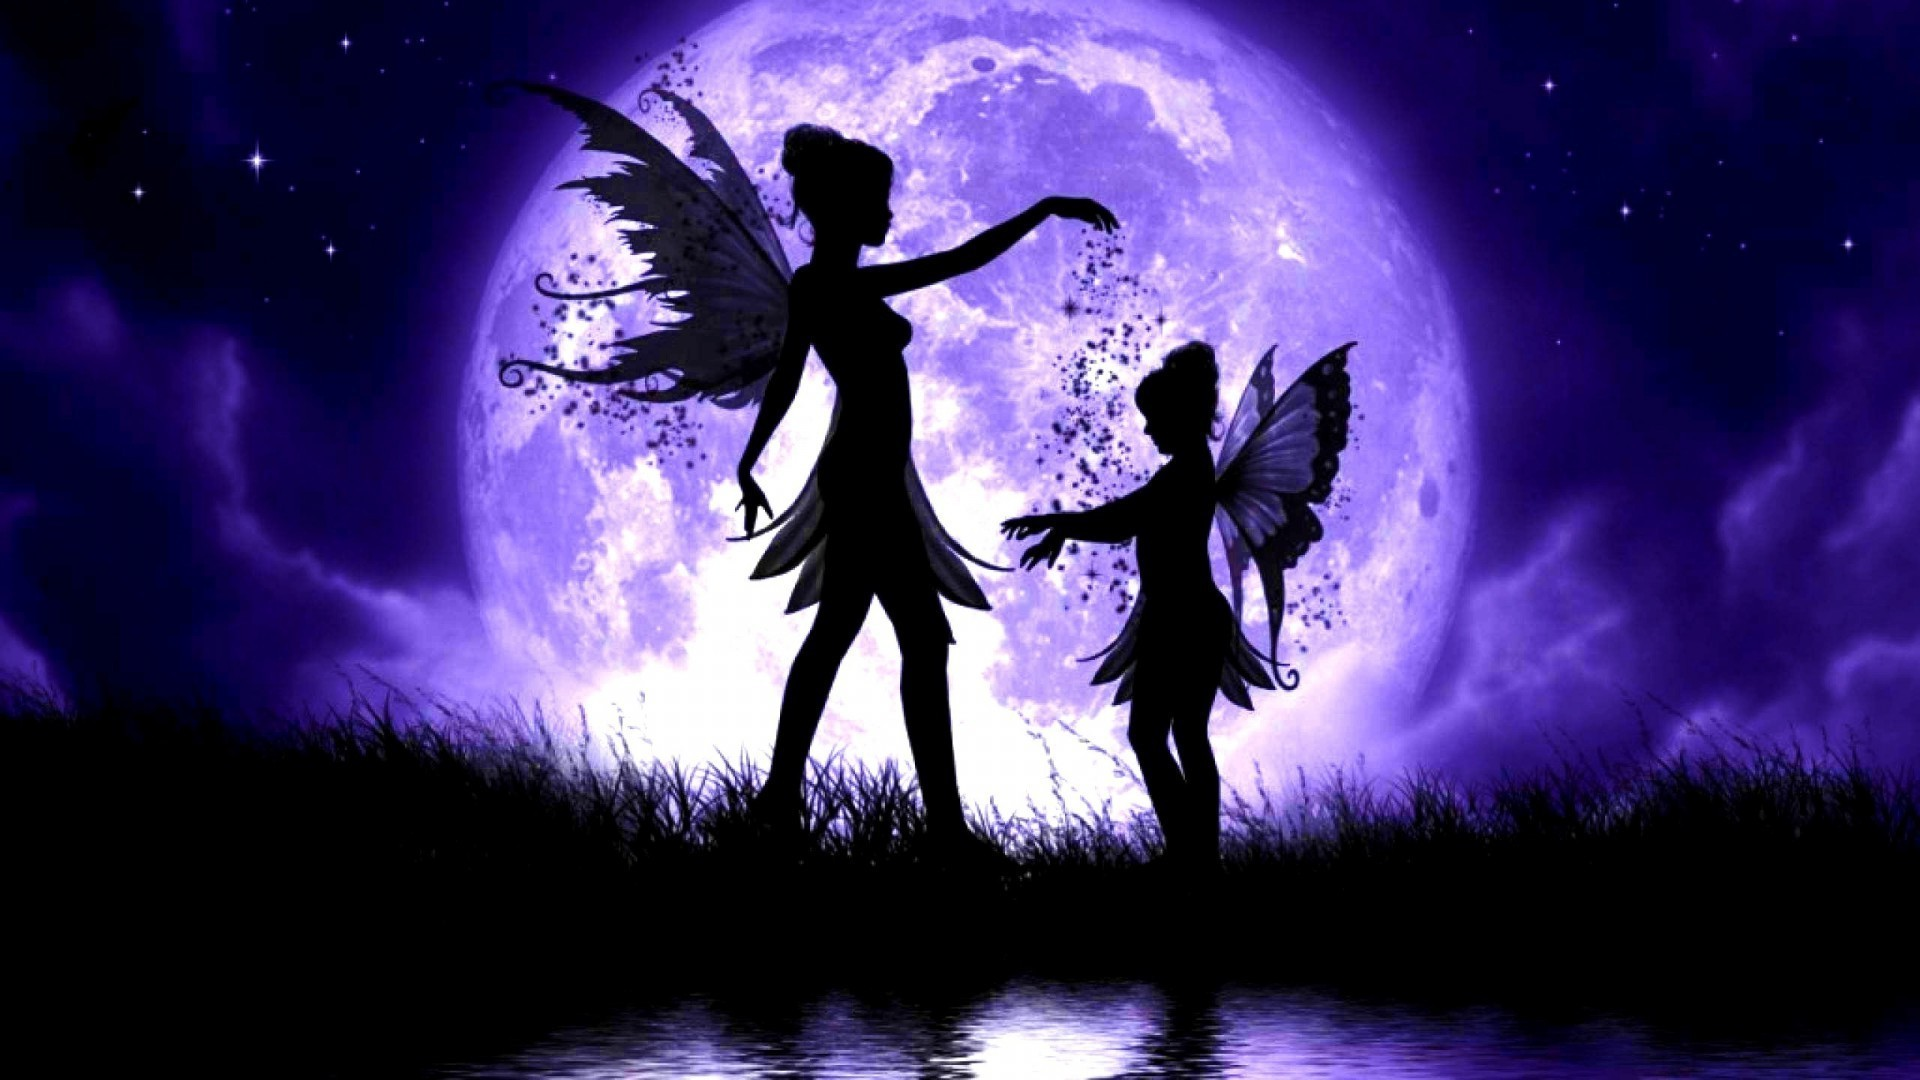 Fairies by moonlight